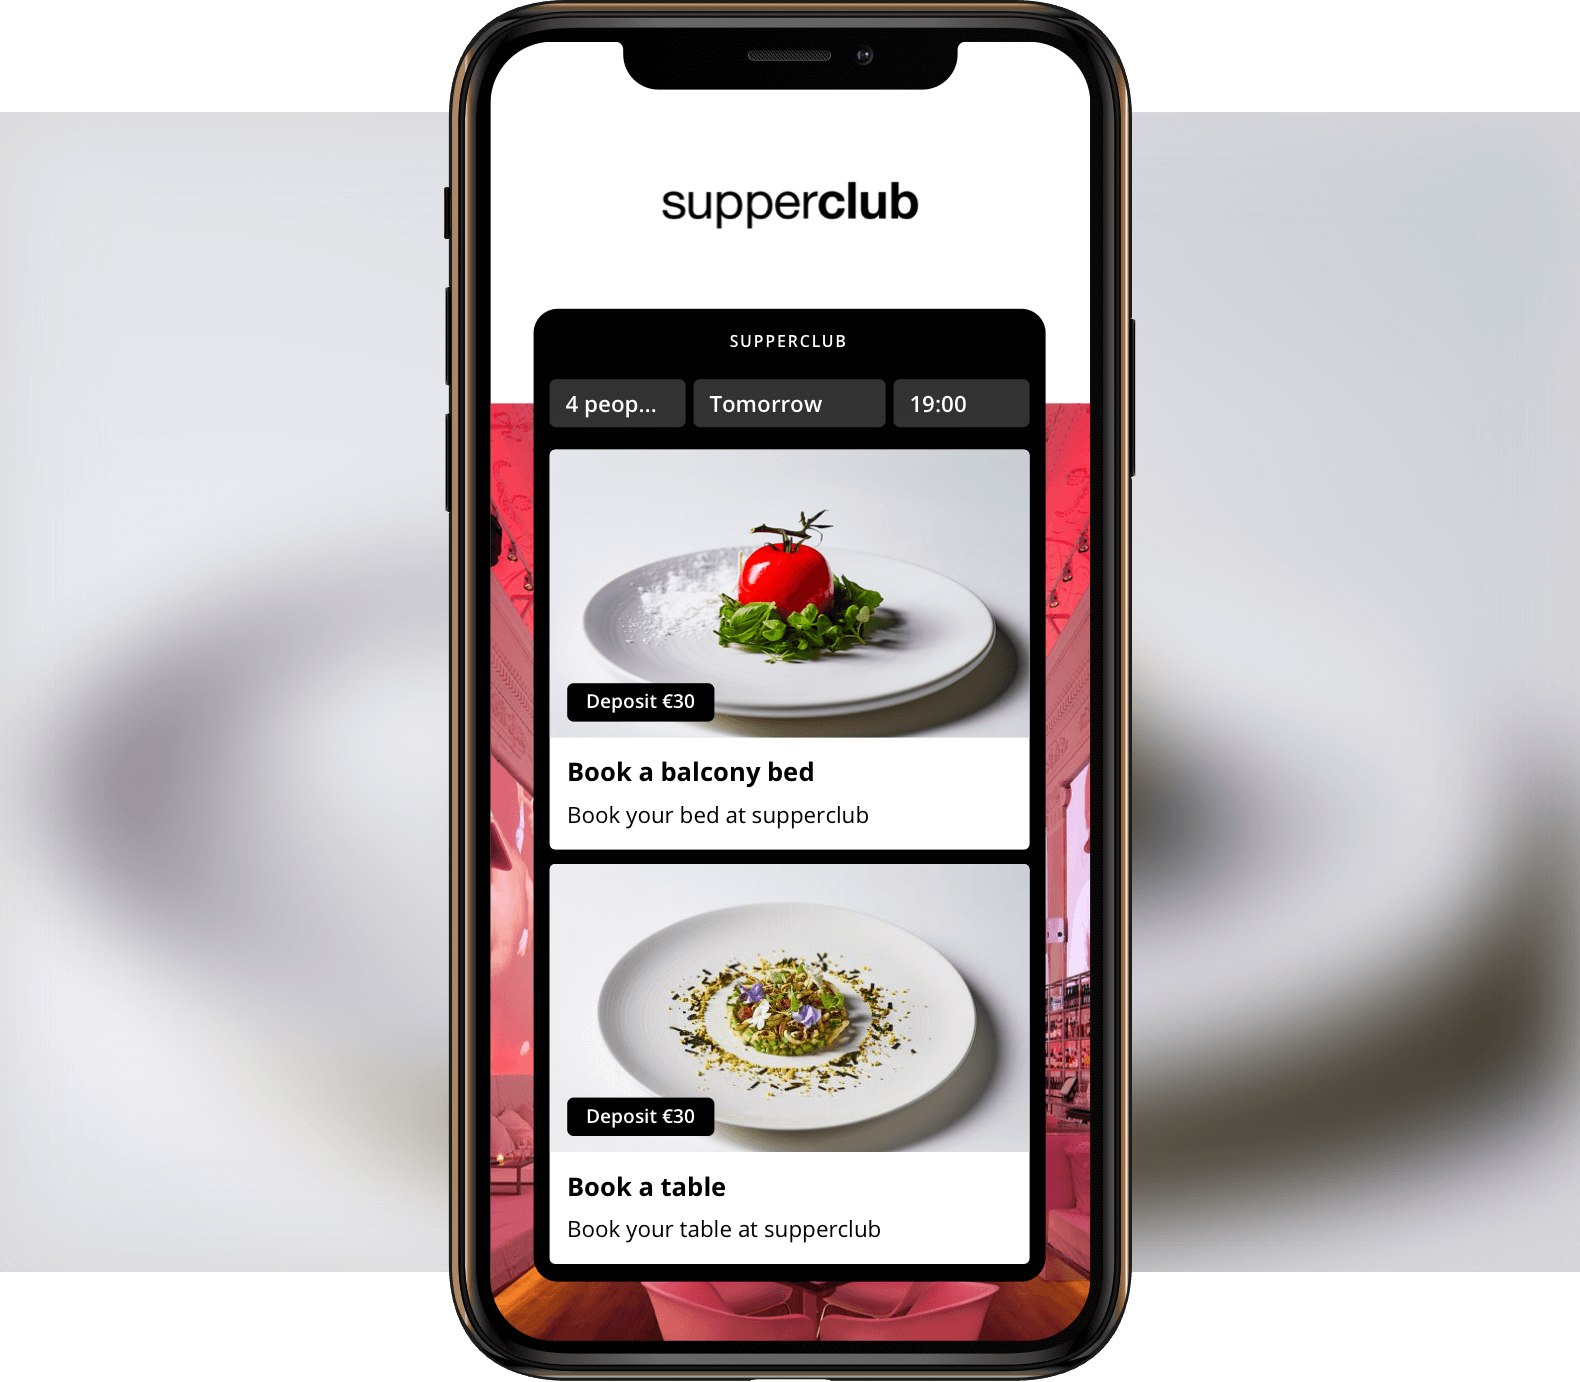 Examples of prepaid events from Supperclub in the Formitable widget